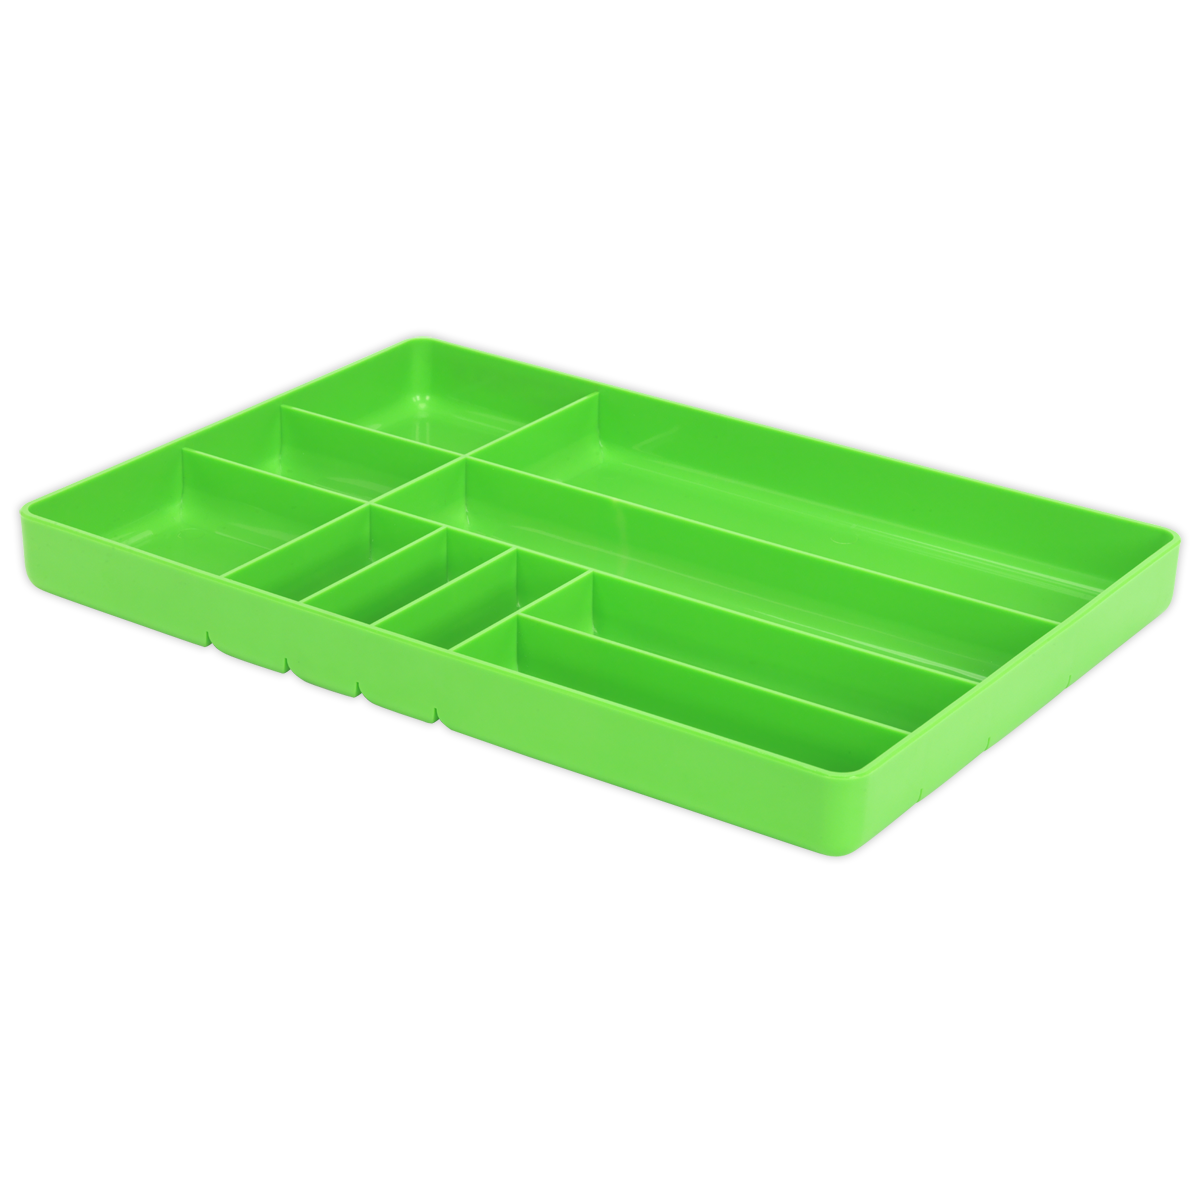 SEALEY Tool & Parts Organiser Hi-Vis Green SPT01HV   Ideal for storing personal items such as keys, mobile phones, additional tools or small components   toolforce.ie